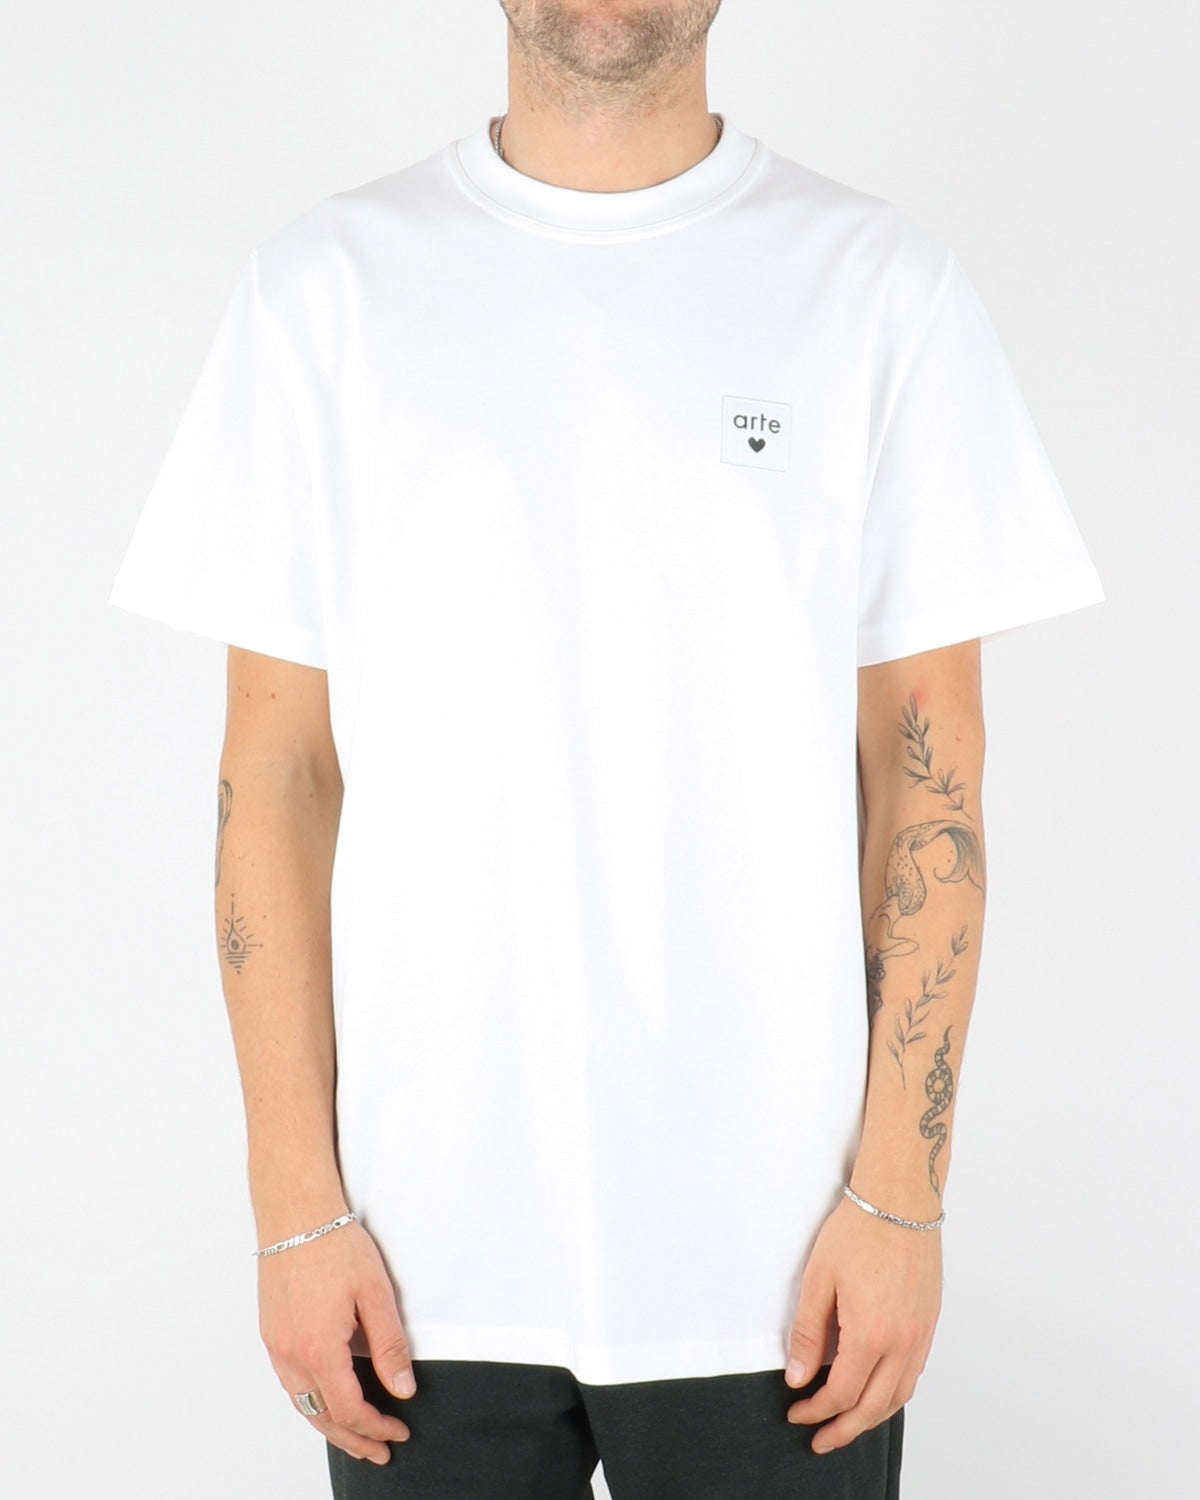 arte_toby heart label t-shirt_white_1_3